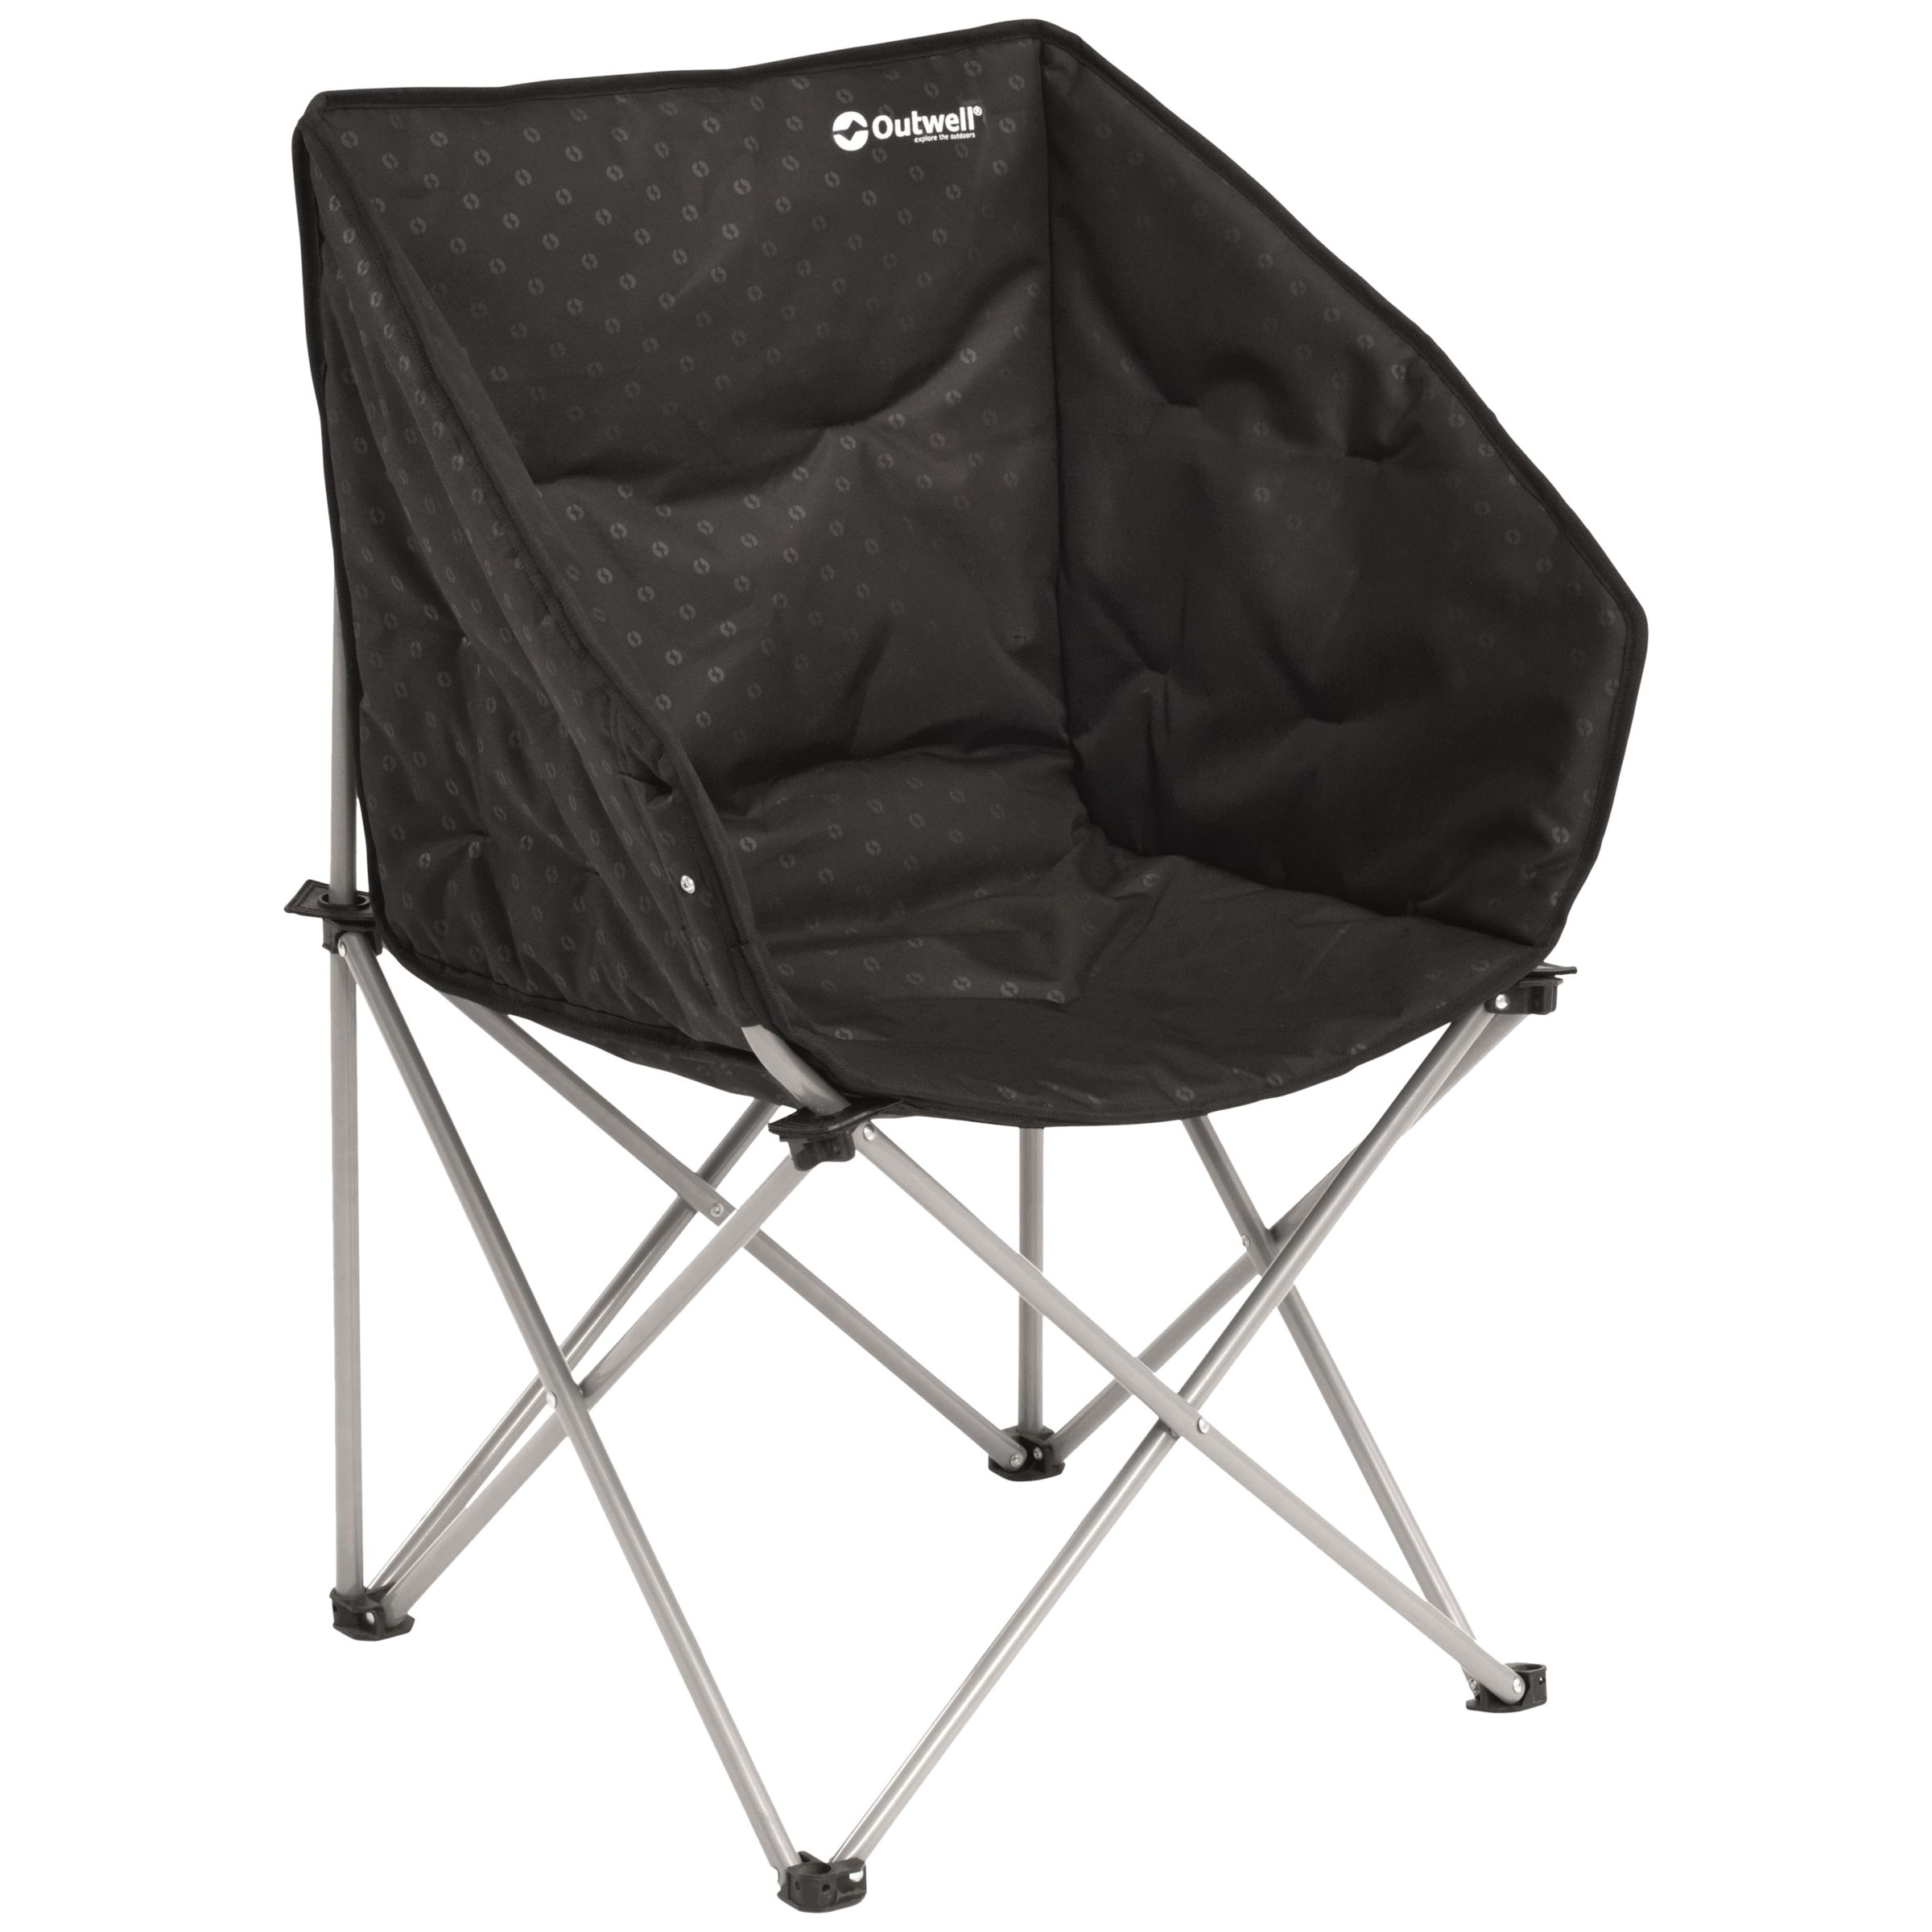 Outwell Outwell Angela Foldable Camping Chair, Black